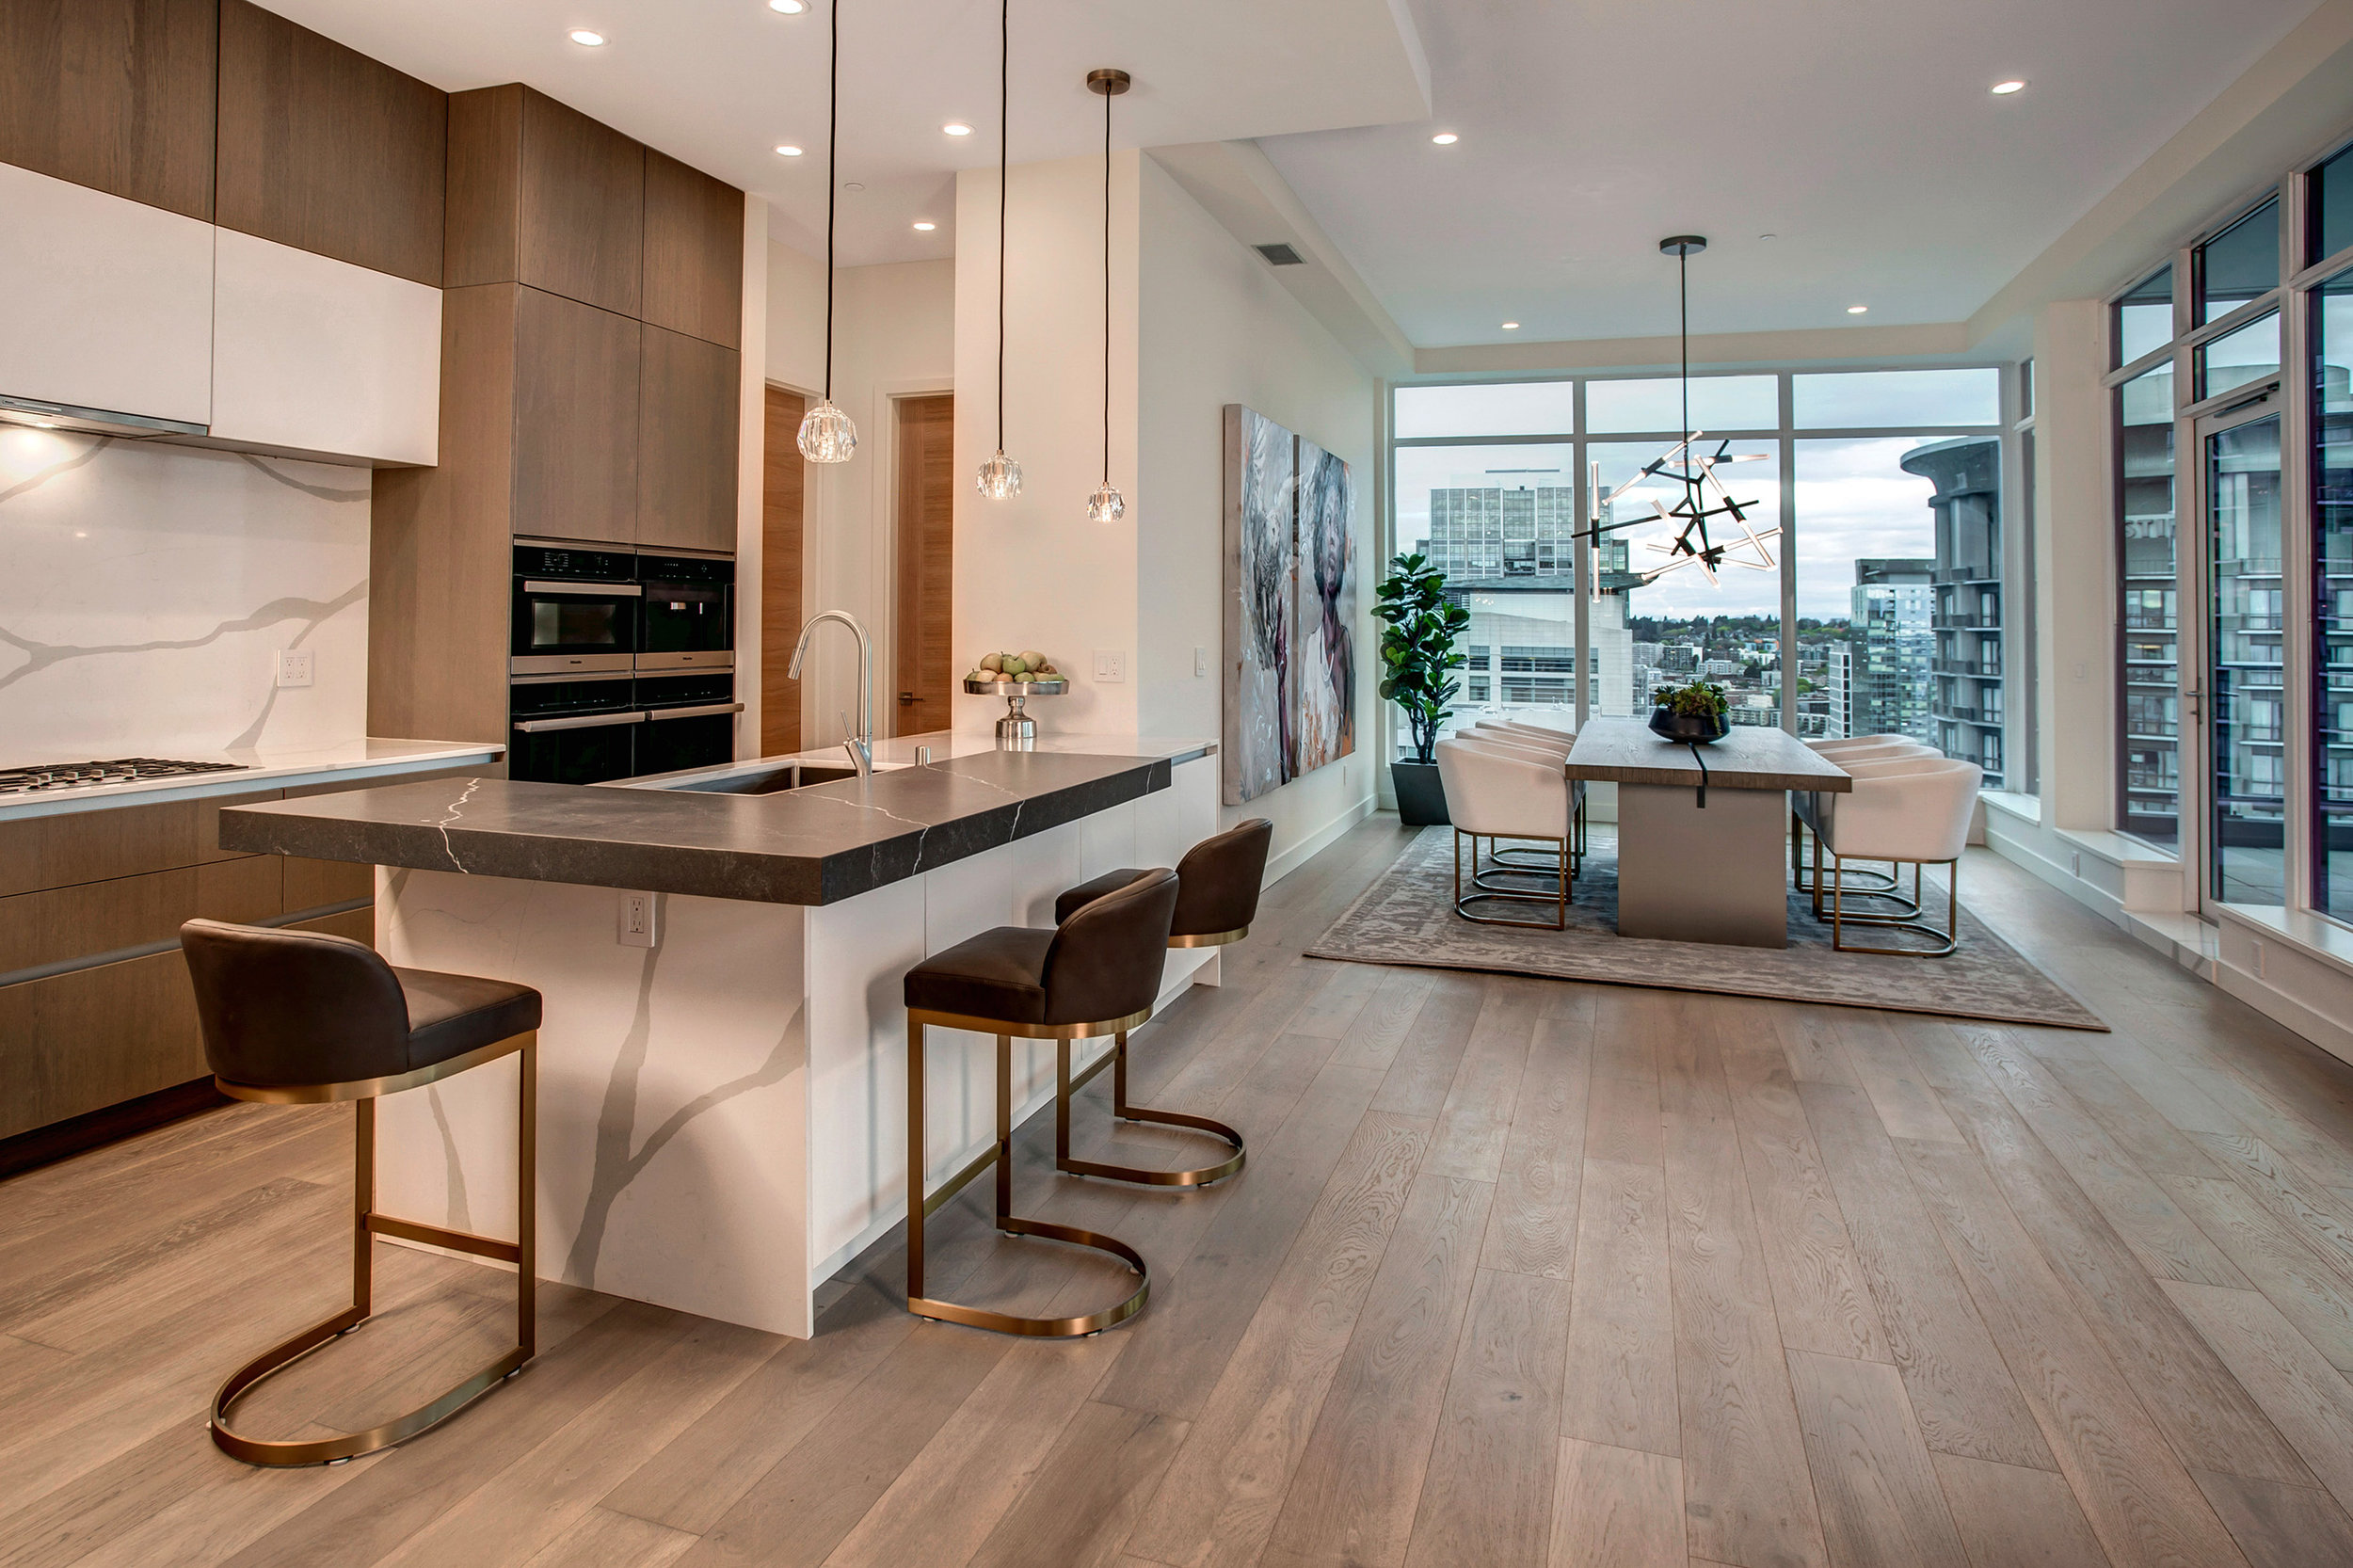 Efficient and modern kitchen with European style cabinetry.